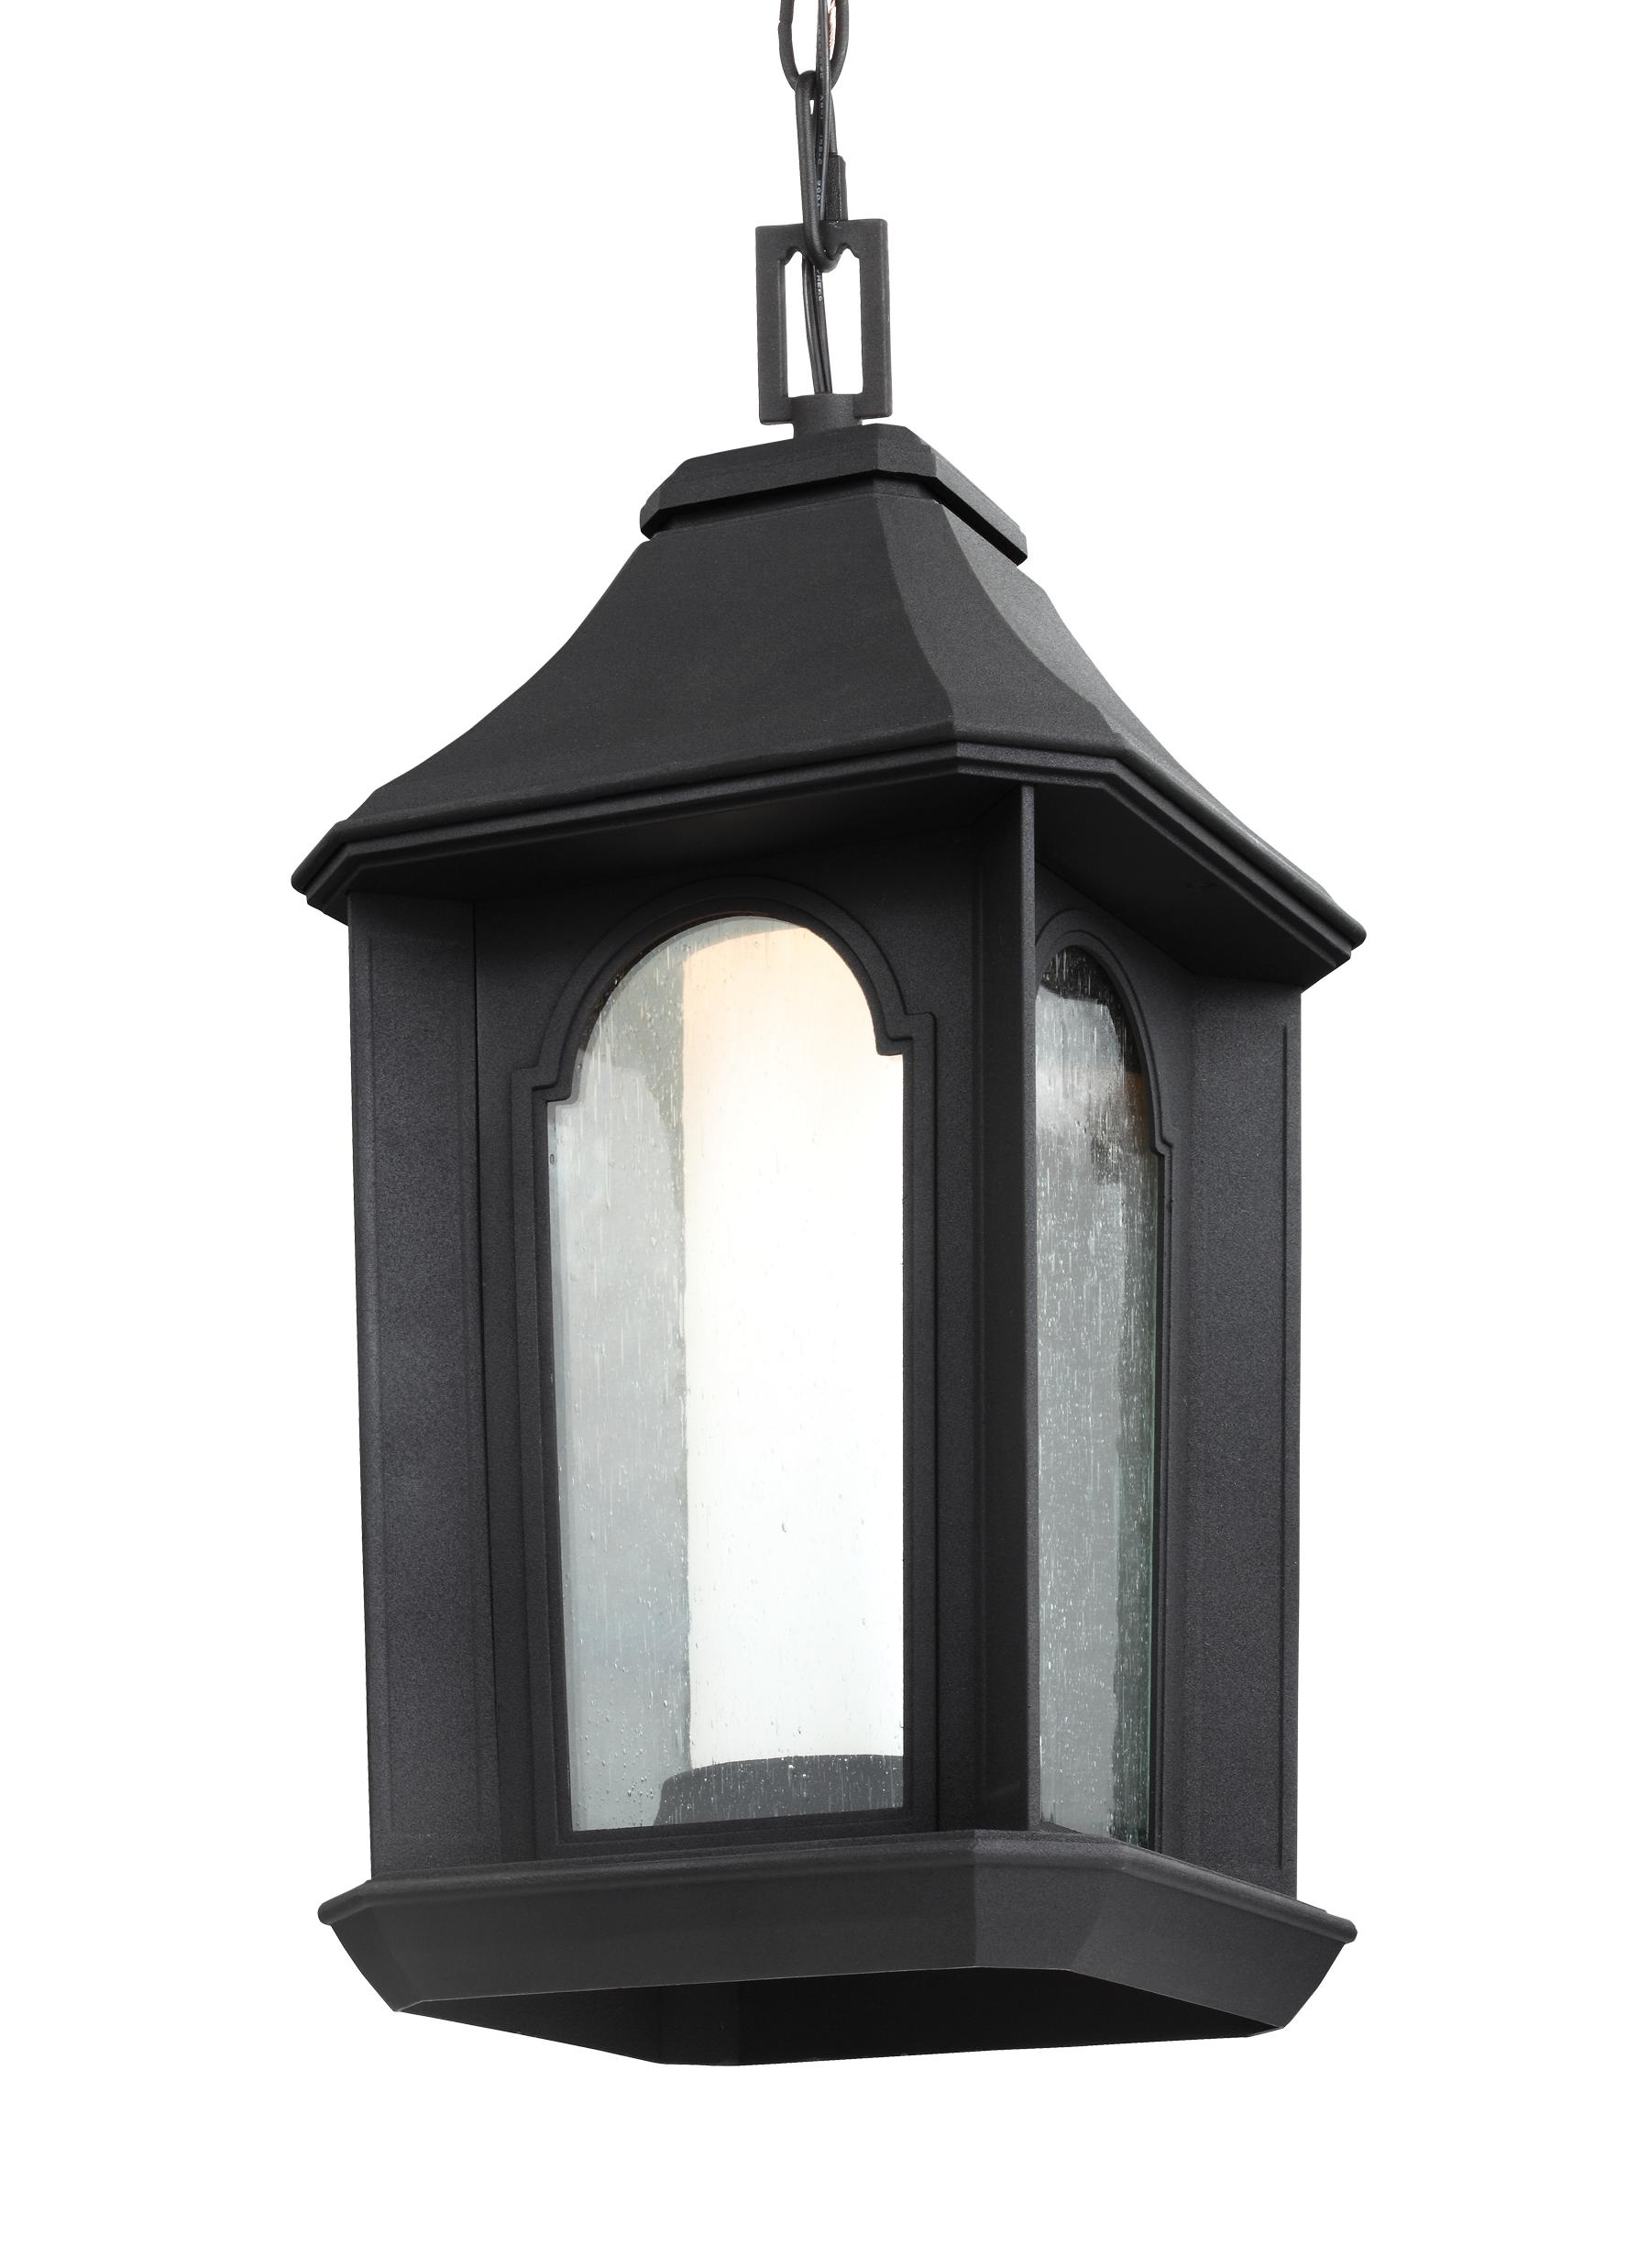 Outdoor Gazebo Lanterns With Preferred Ol11509txb Led,1 – Light Outdoor Led Pendant Lantern,textured Black (View 12 of 20)